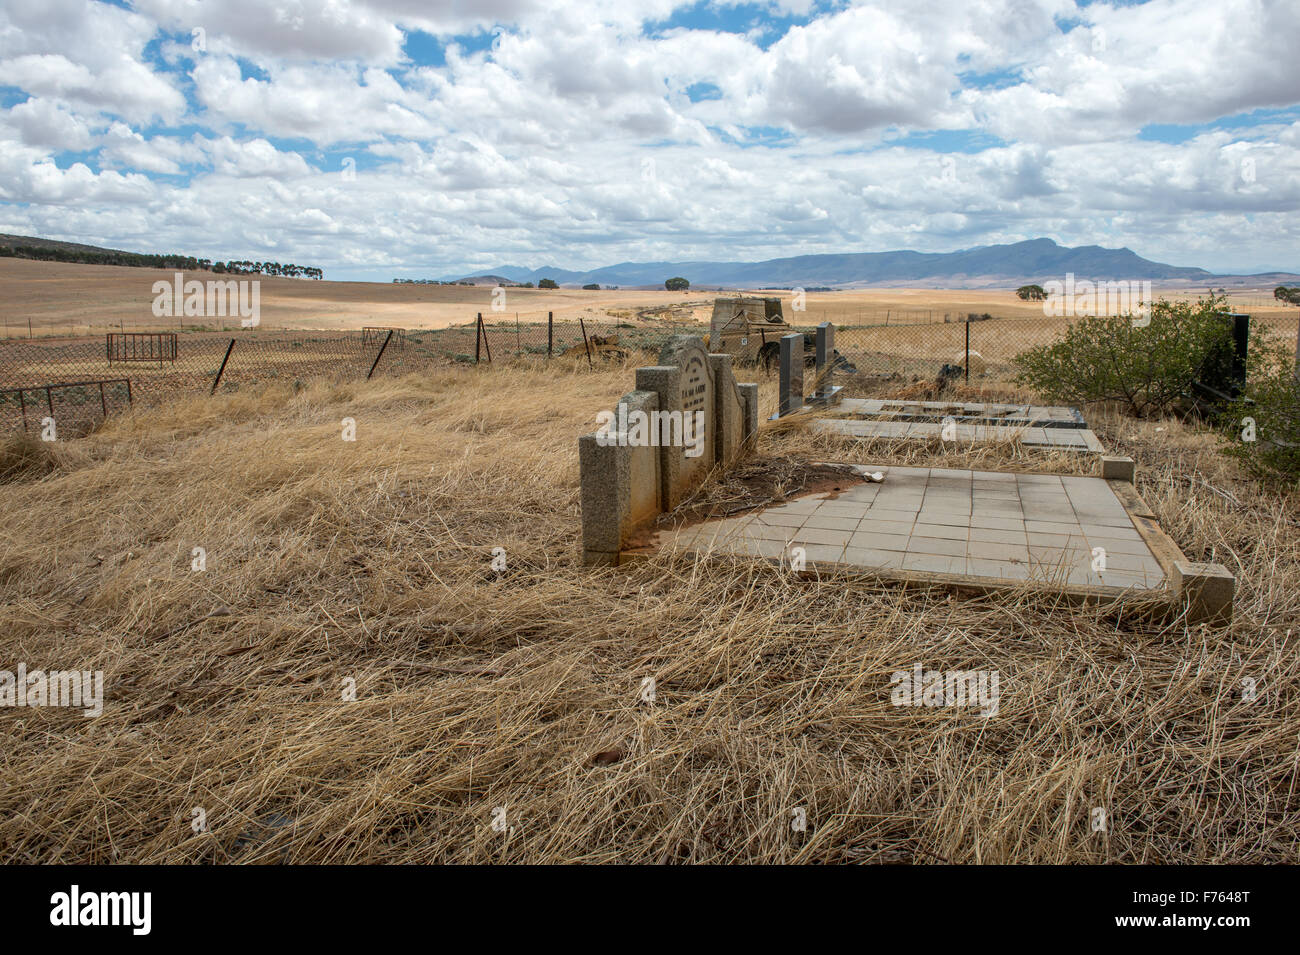 tombstones in a field in South Africa - Stock Image